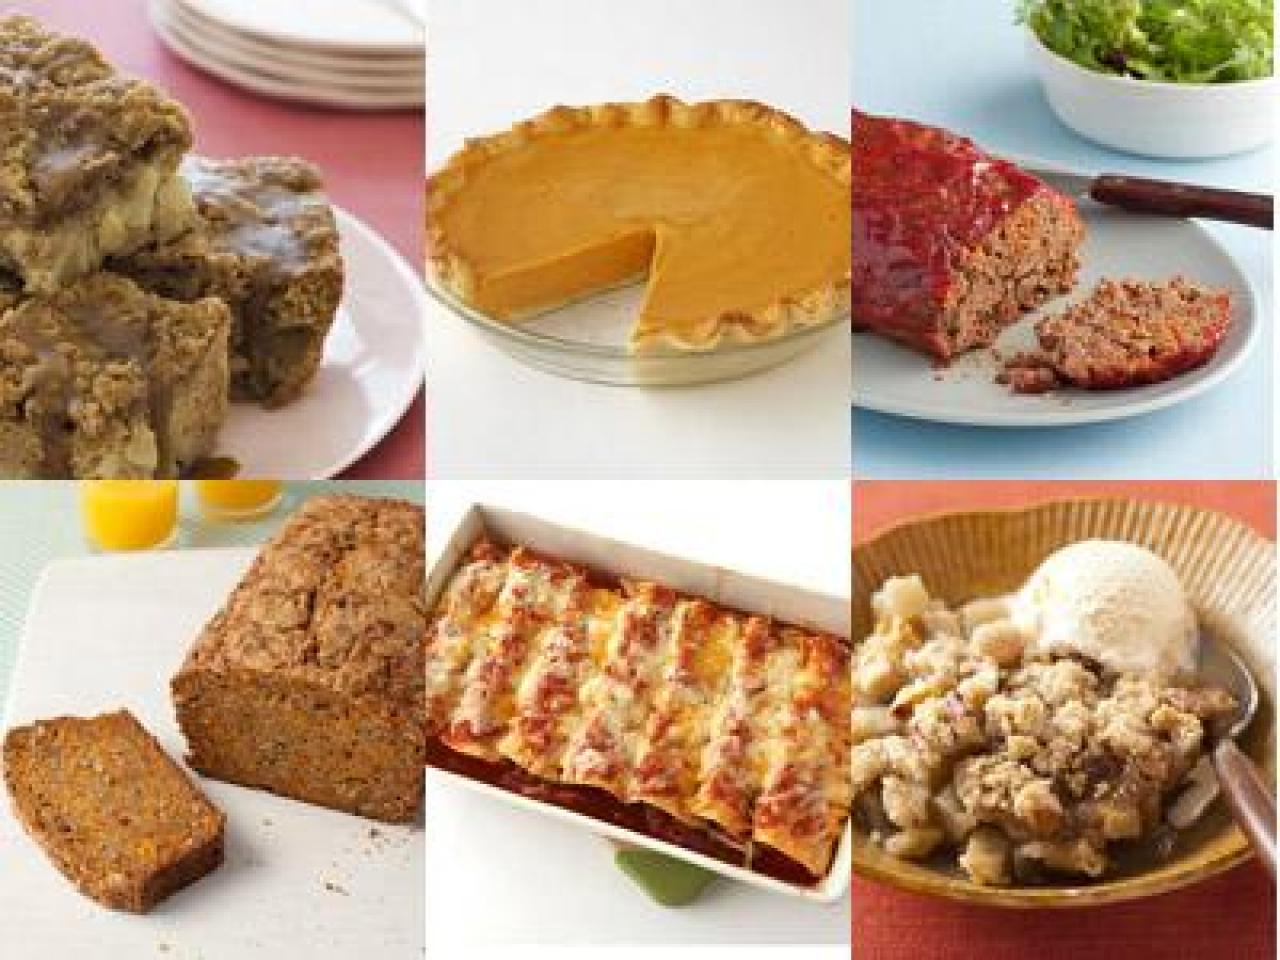 October 39 s top 10 recipes fn dish behind the scenes for October recipes